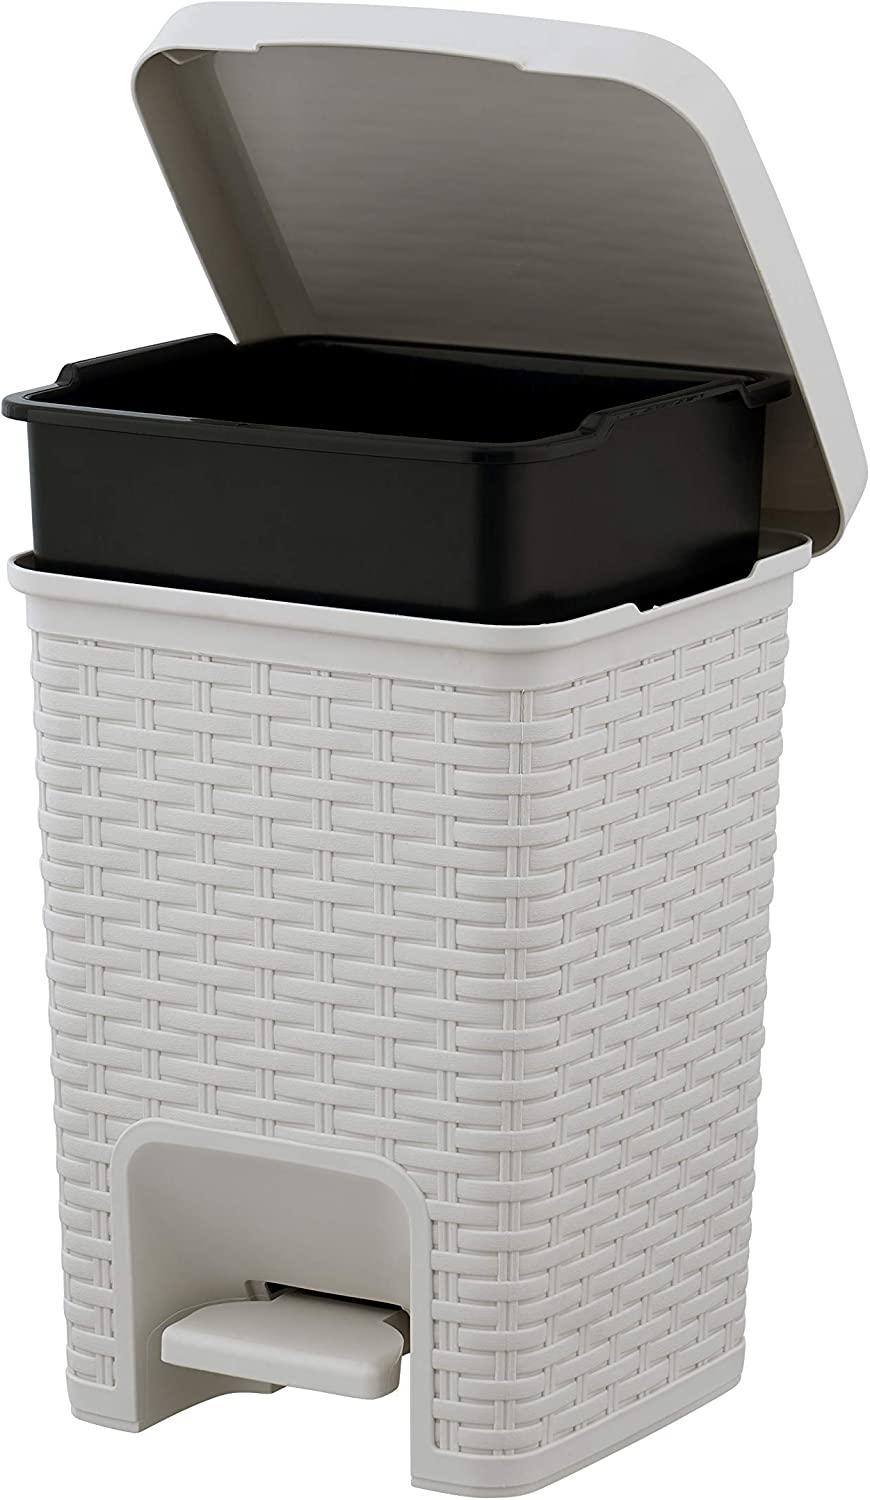 Superio Square Pedal Trash Can 7.5 Qt Ivory Beige - Wicker Style Compact Trash Can for Small Spaces, Small Trash Bin Rattan Look